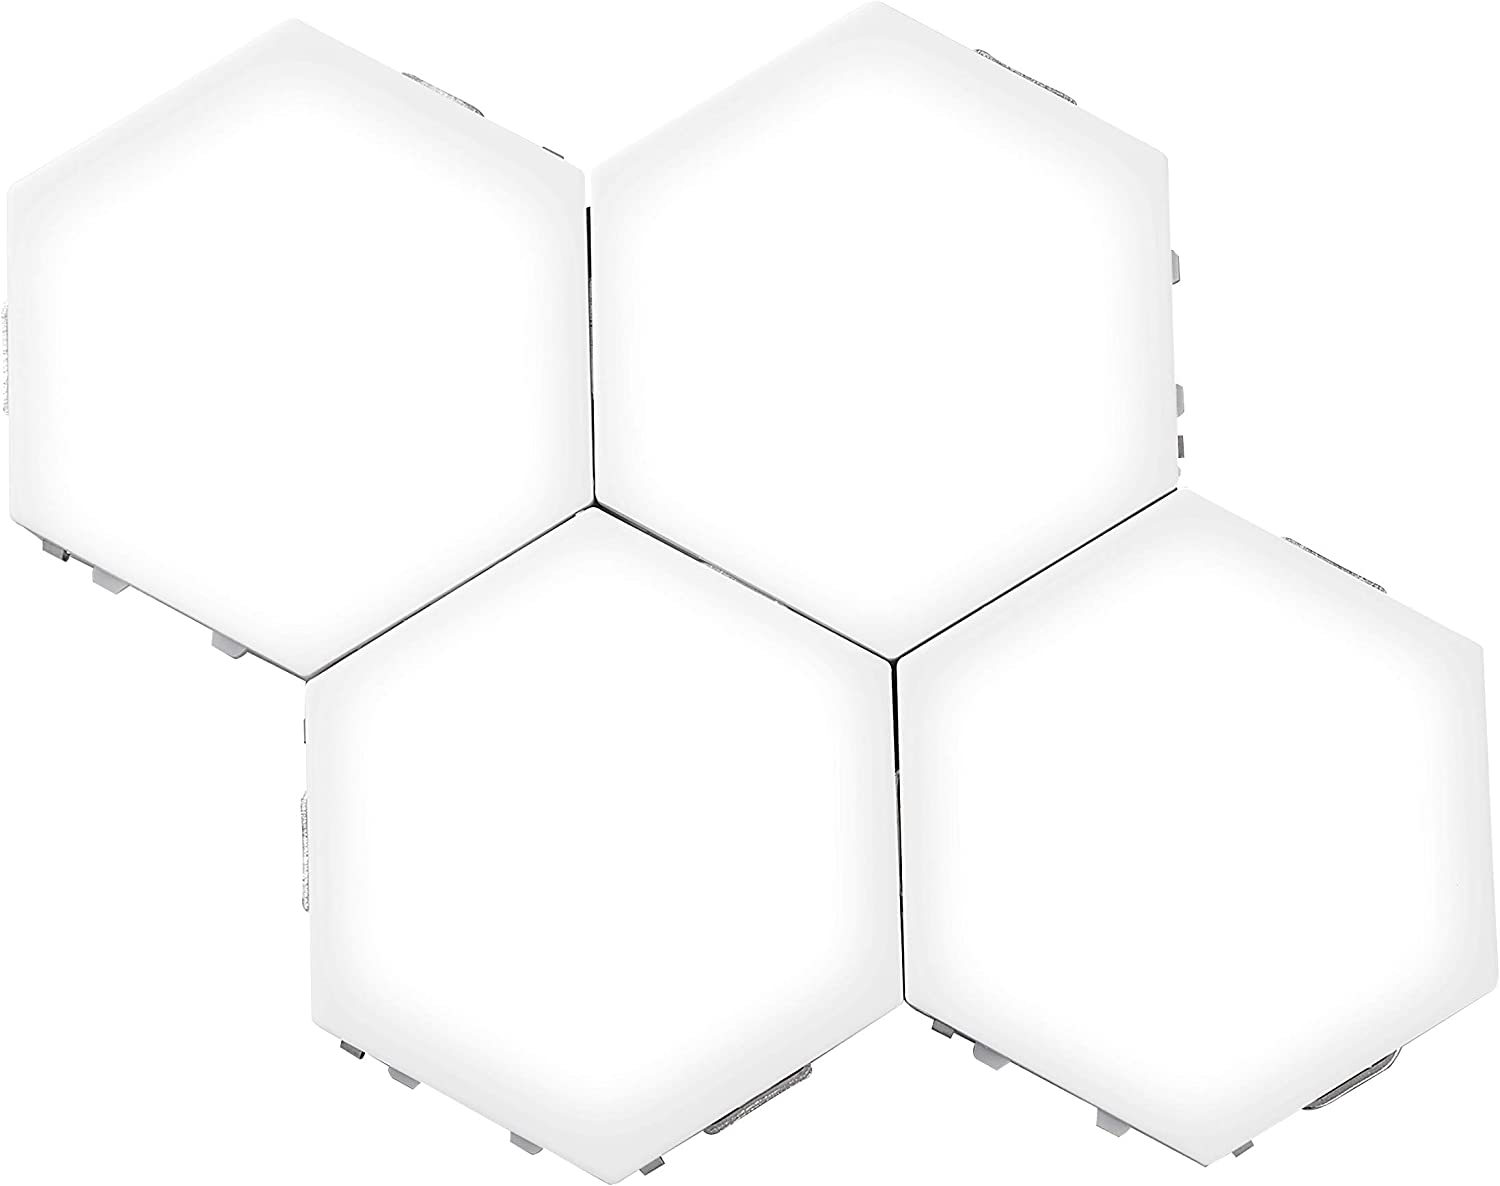 Hexagon Led Lights,Large Size Honeycomb Wall Lights DIY Modular Touch Lamp Quantum Night Light for Home Office Hotel Bar (4 PCS, White)